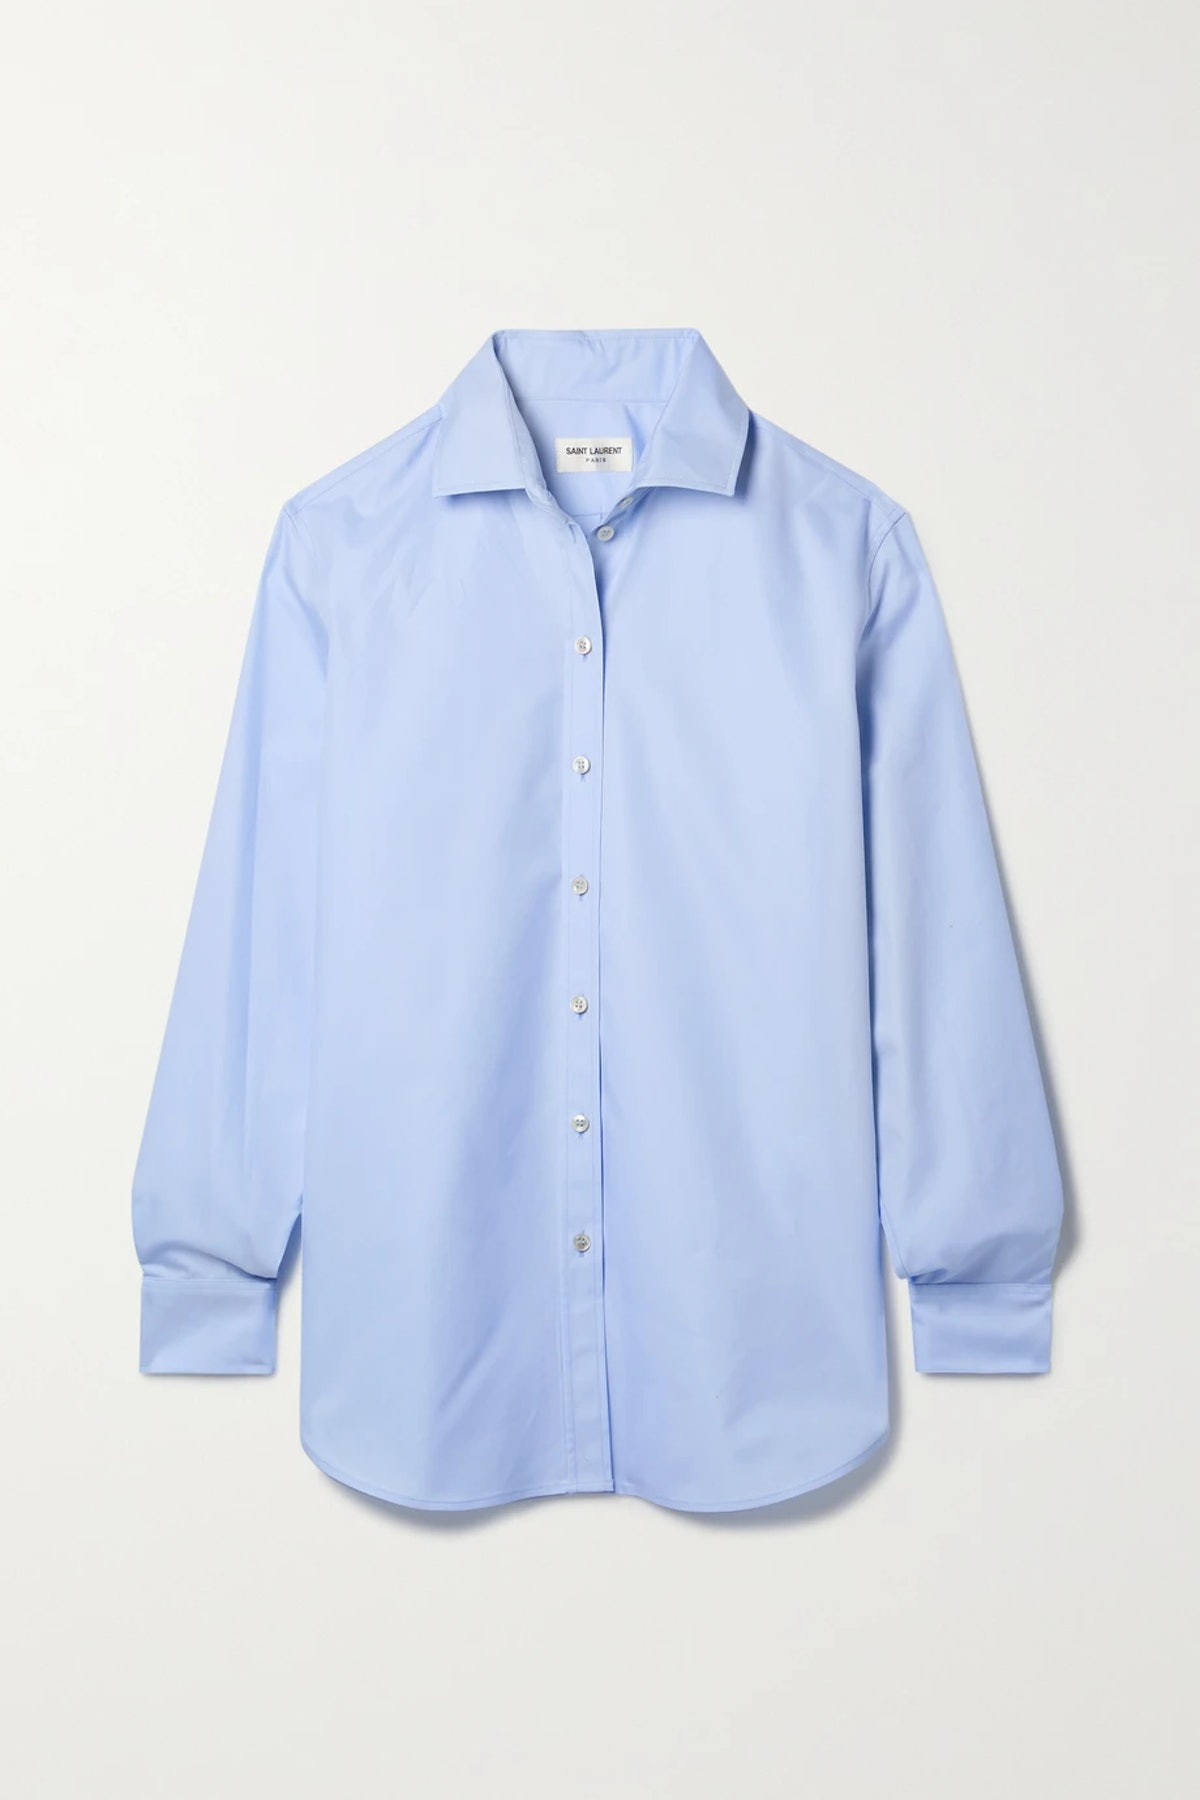 Cotton-twill shirt from Saint Laurent, available on Net-a-Porter.